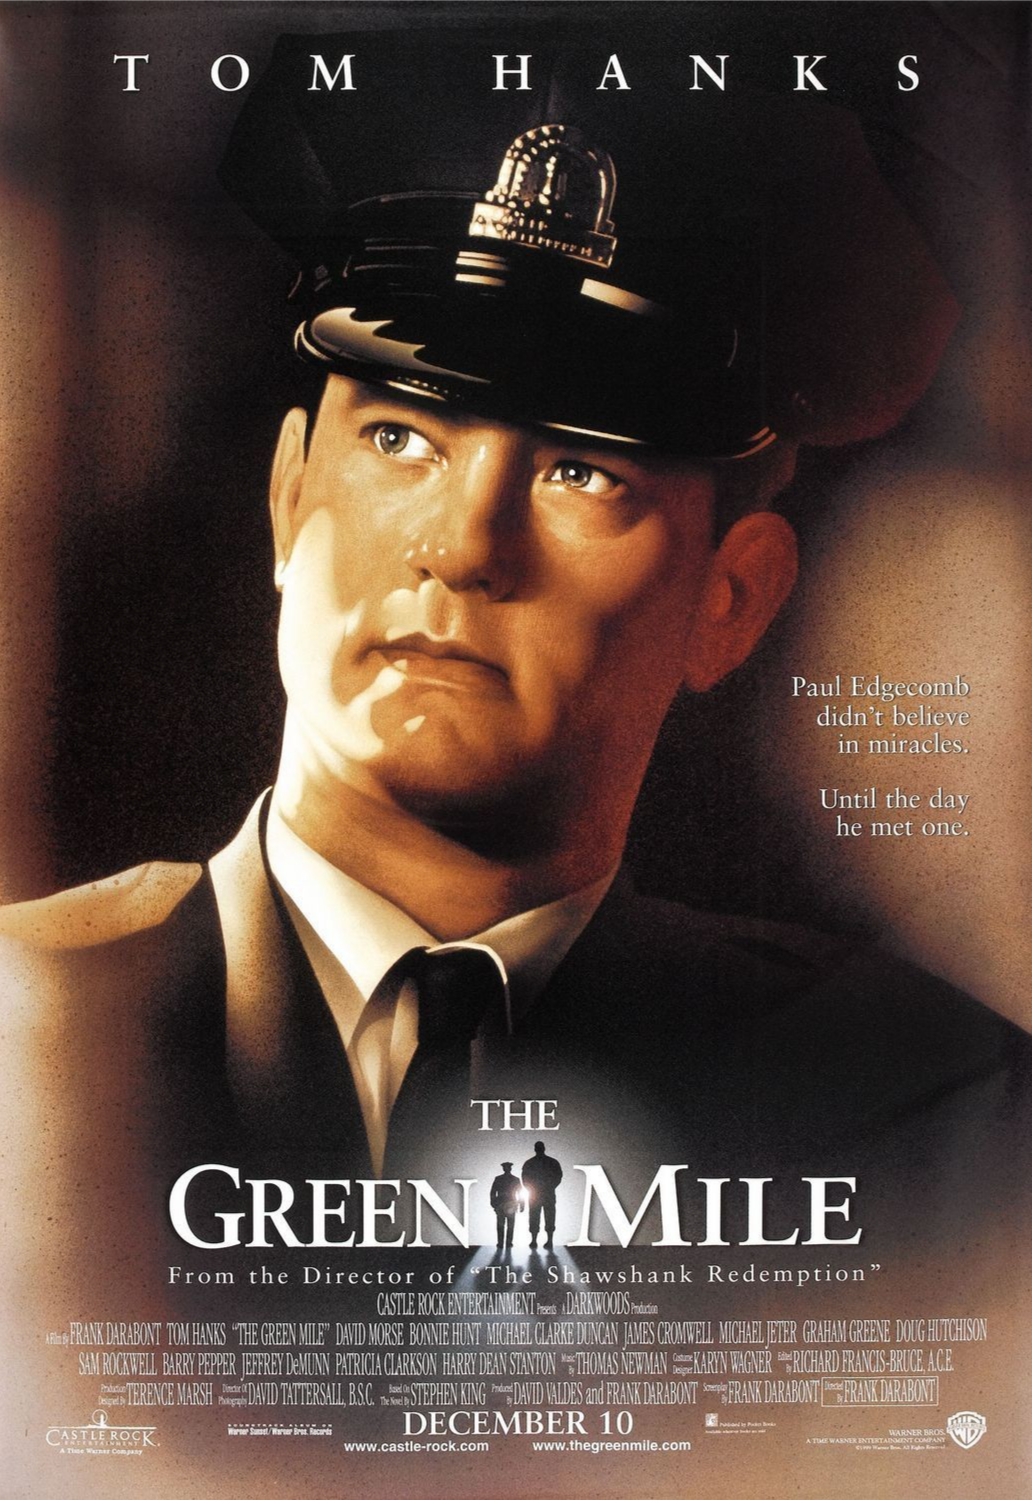 true hollywood story the shawshank redemption metafilter the green mile i always loved tom hanks